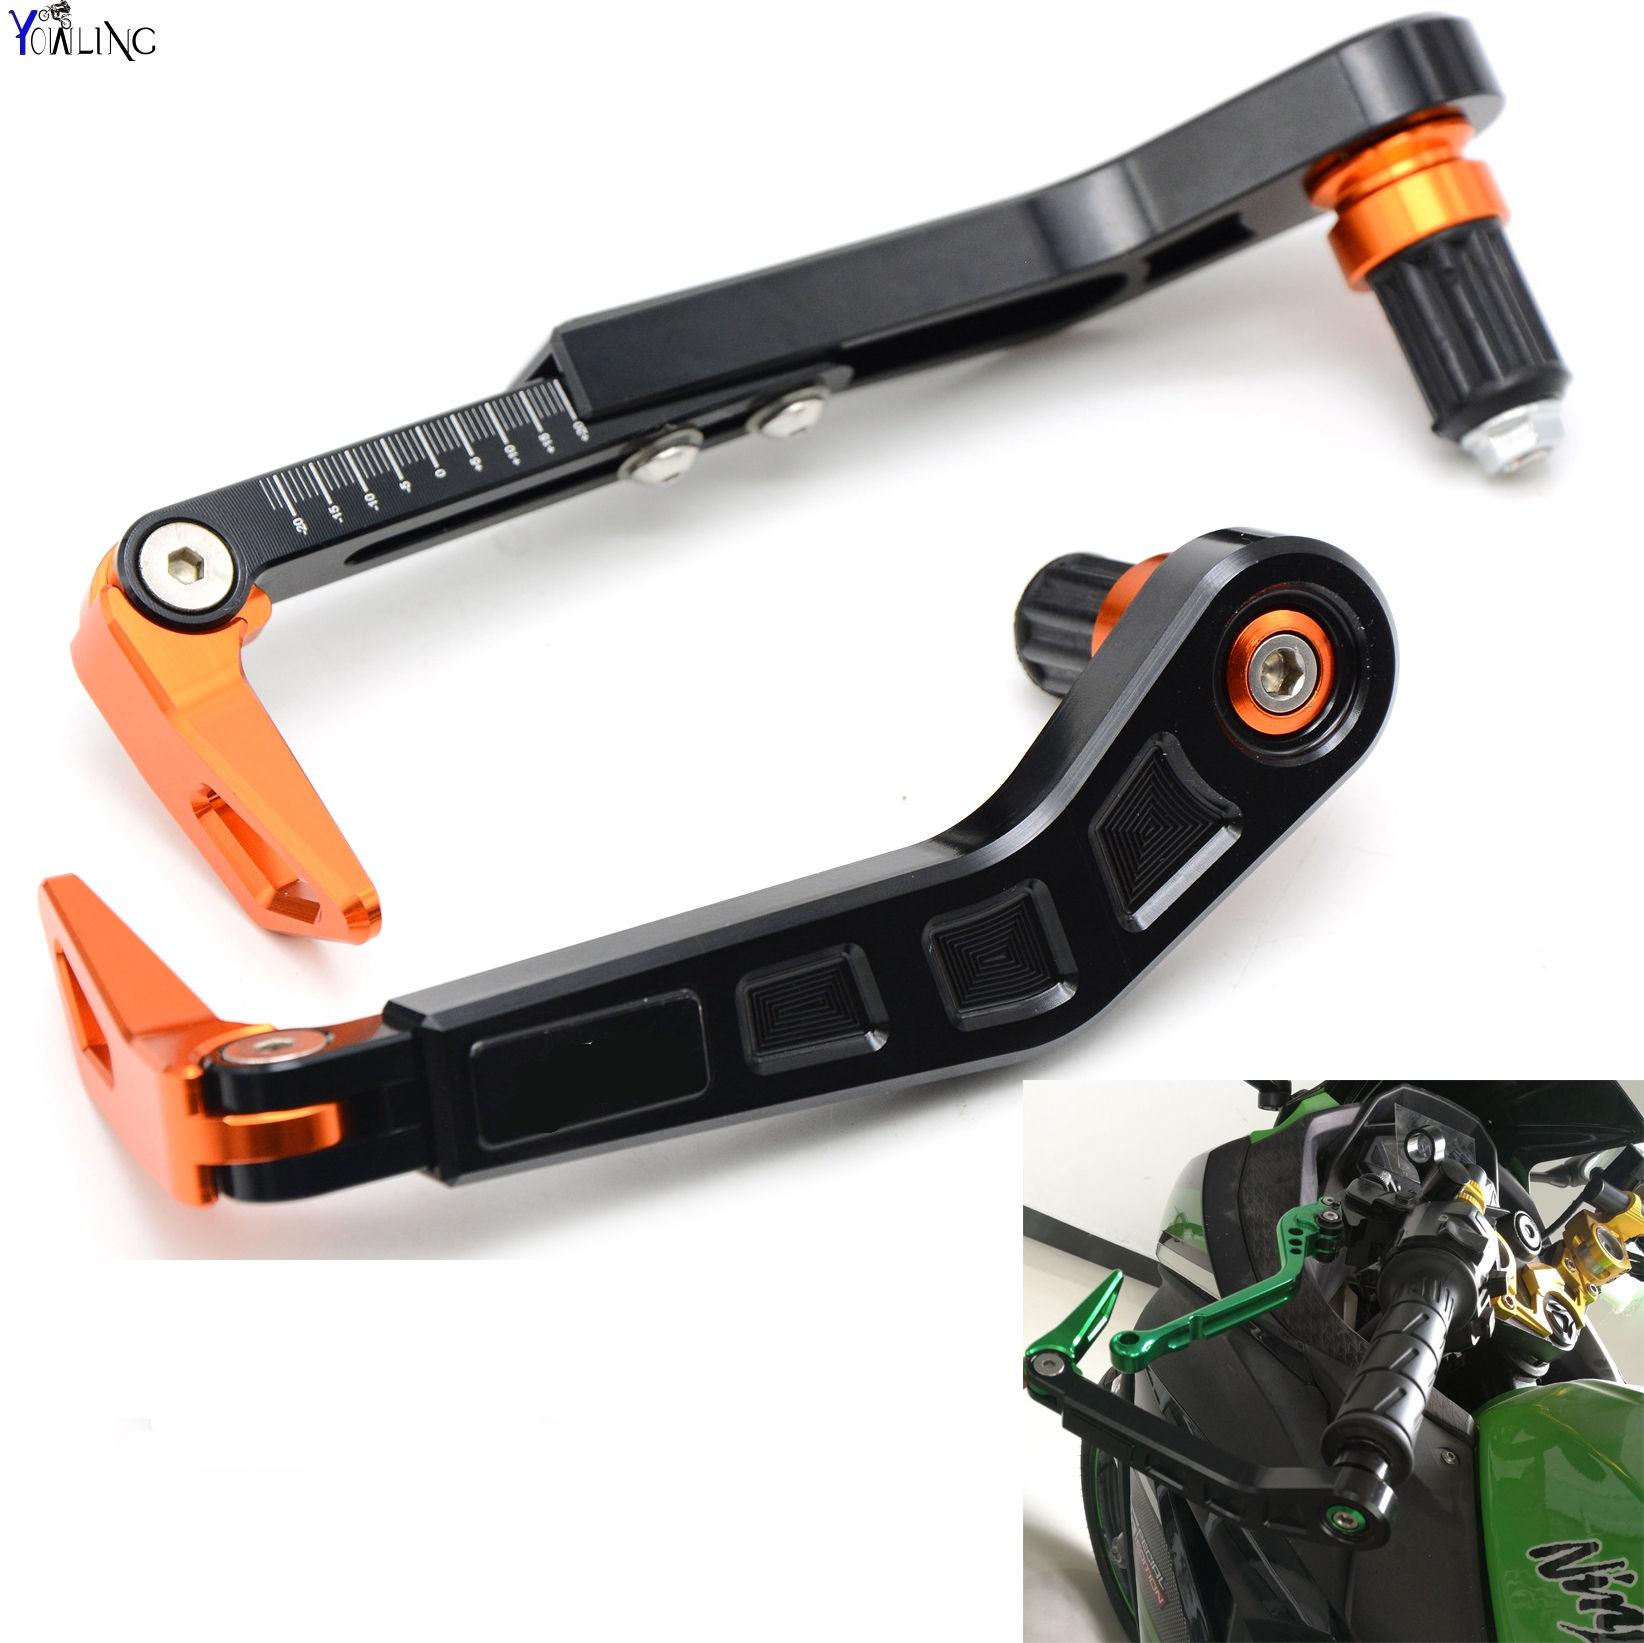 Universal 7/822mm Motorcycle Handlebar Brake Clutch Lever Protect Guard for KTM RC8 RC8R RC125 125 Duke 990 SMR/SMT Super Duke motorcycle cnc billet aluminum handlebar protection 7 8 22mm brake clutch lever protect guard for ktm 125 200 390 690 990 duke